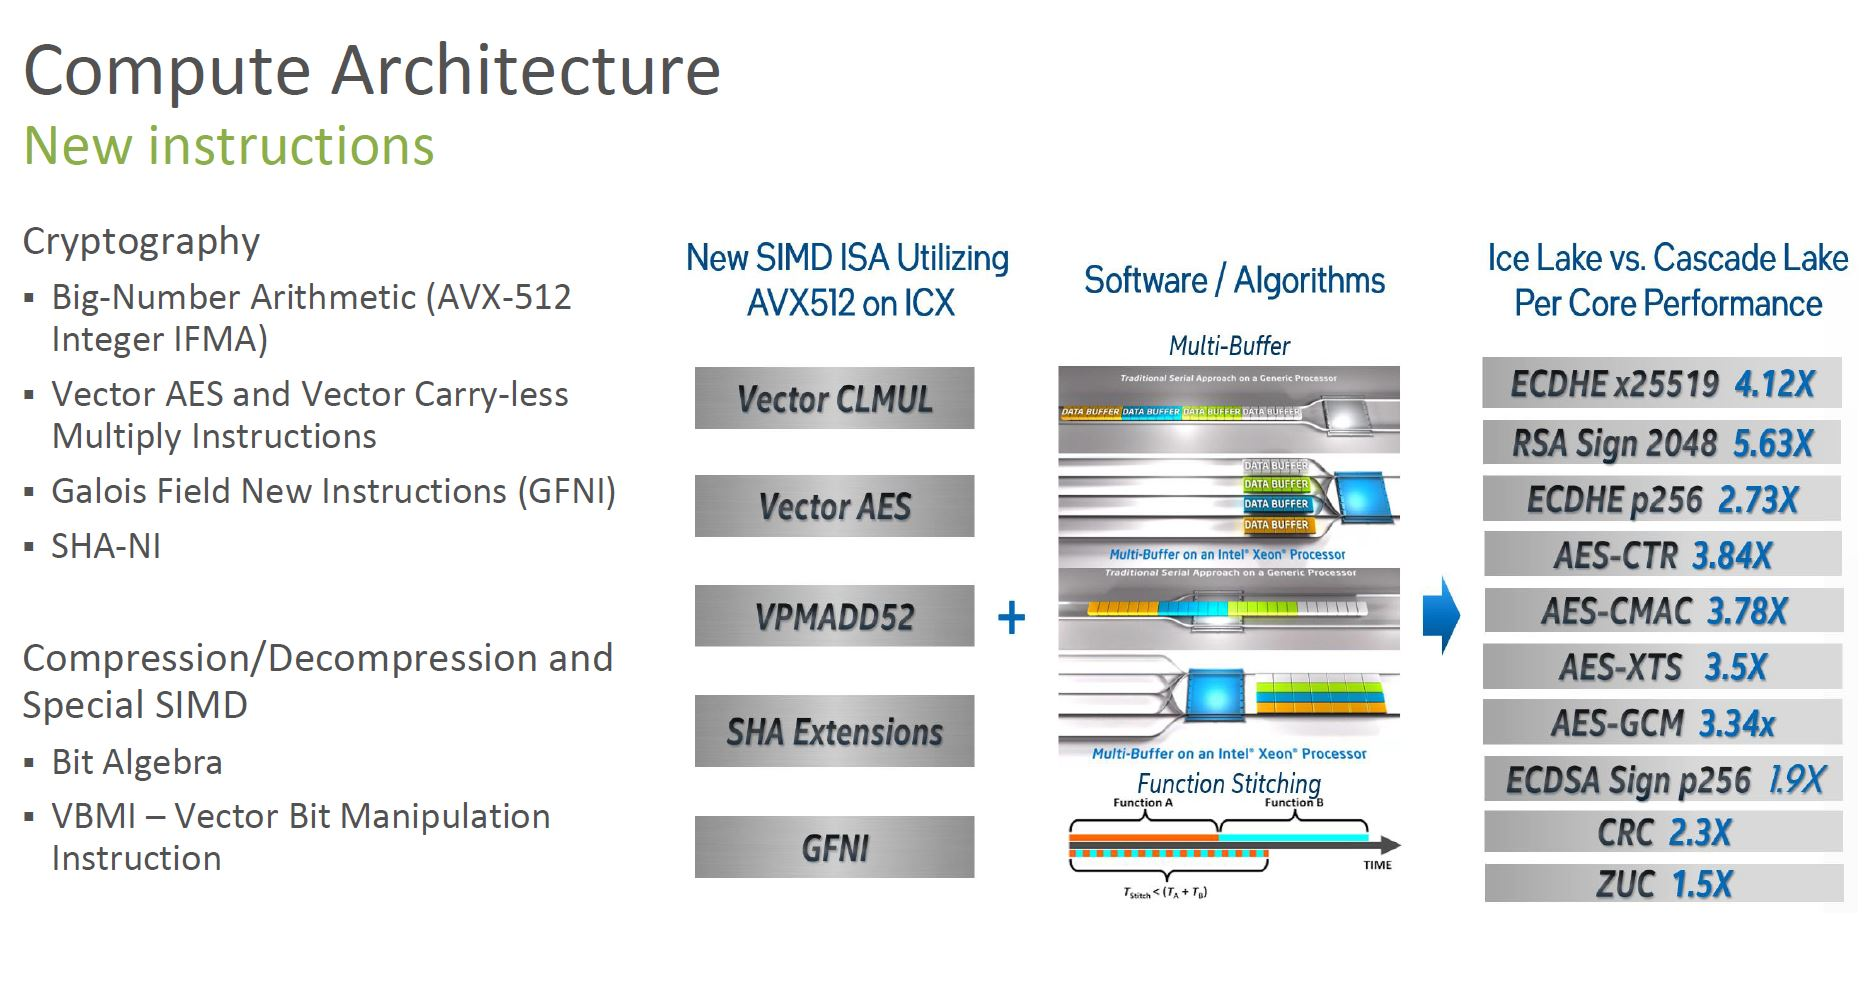 3rd Generation Intel Xeon Scalable Ice Lake New Instructions